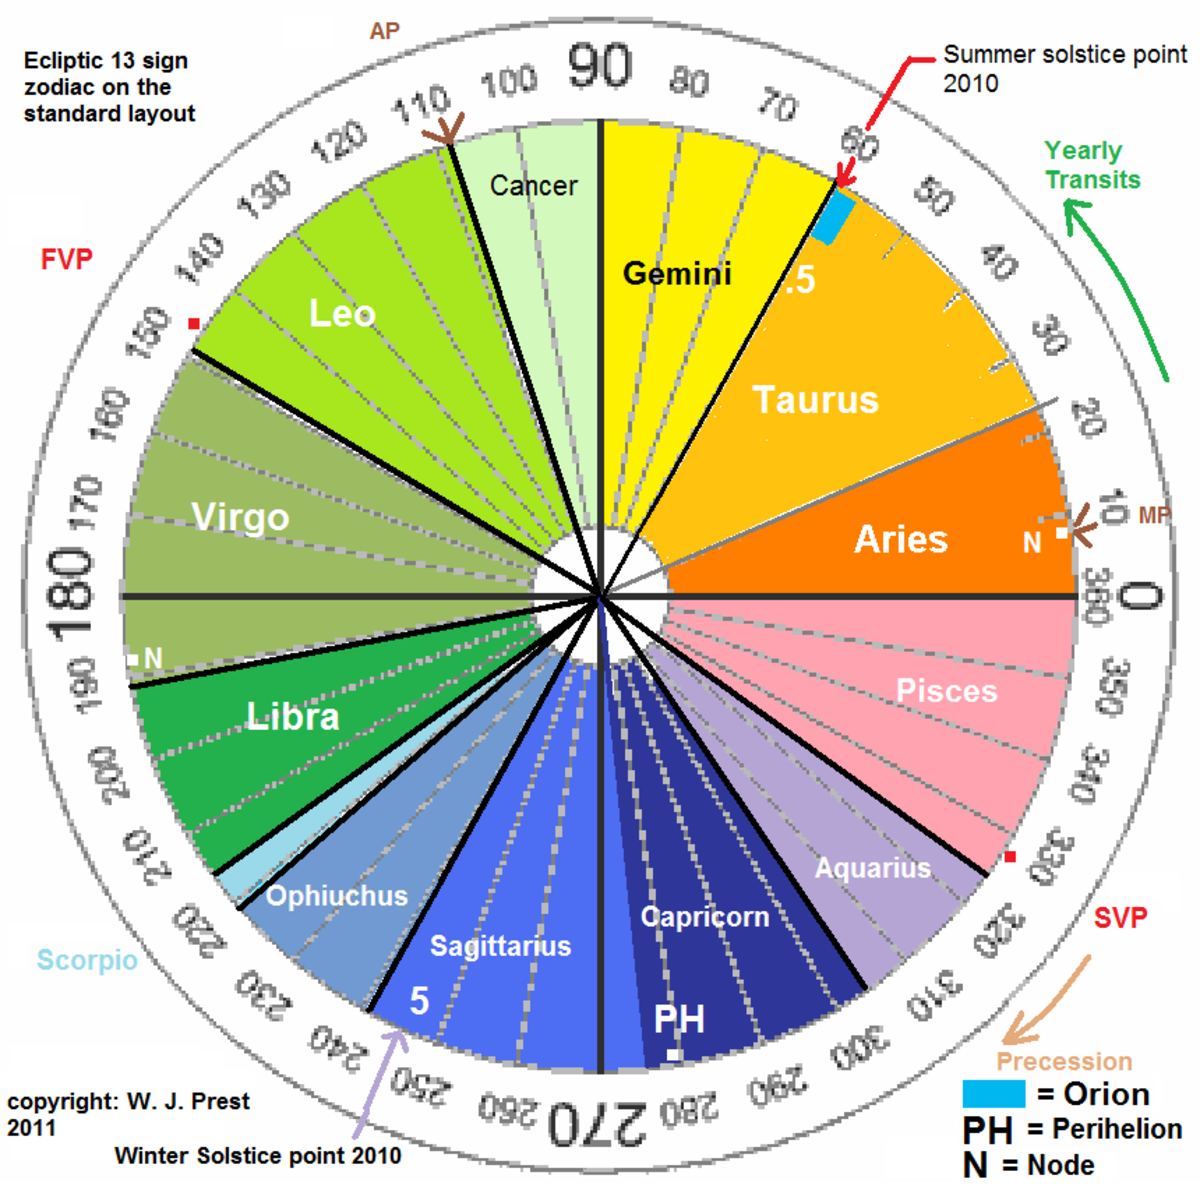 The Ages According to the 13 Unequal Zodiacal Constellations